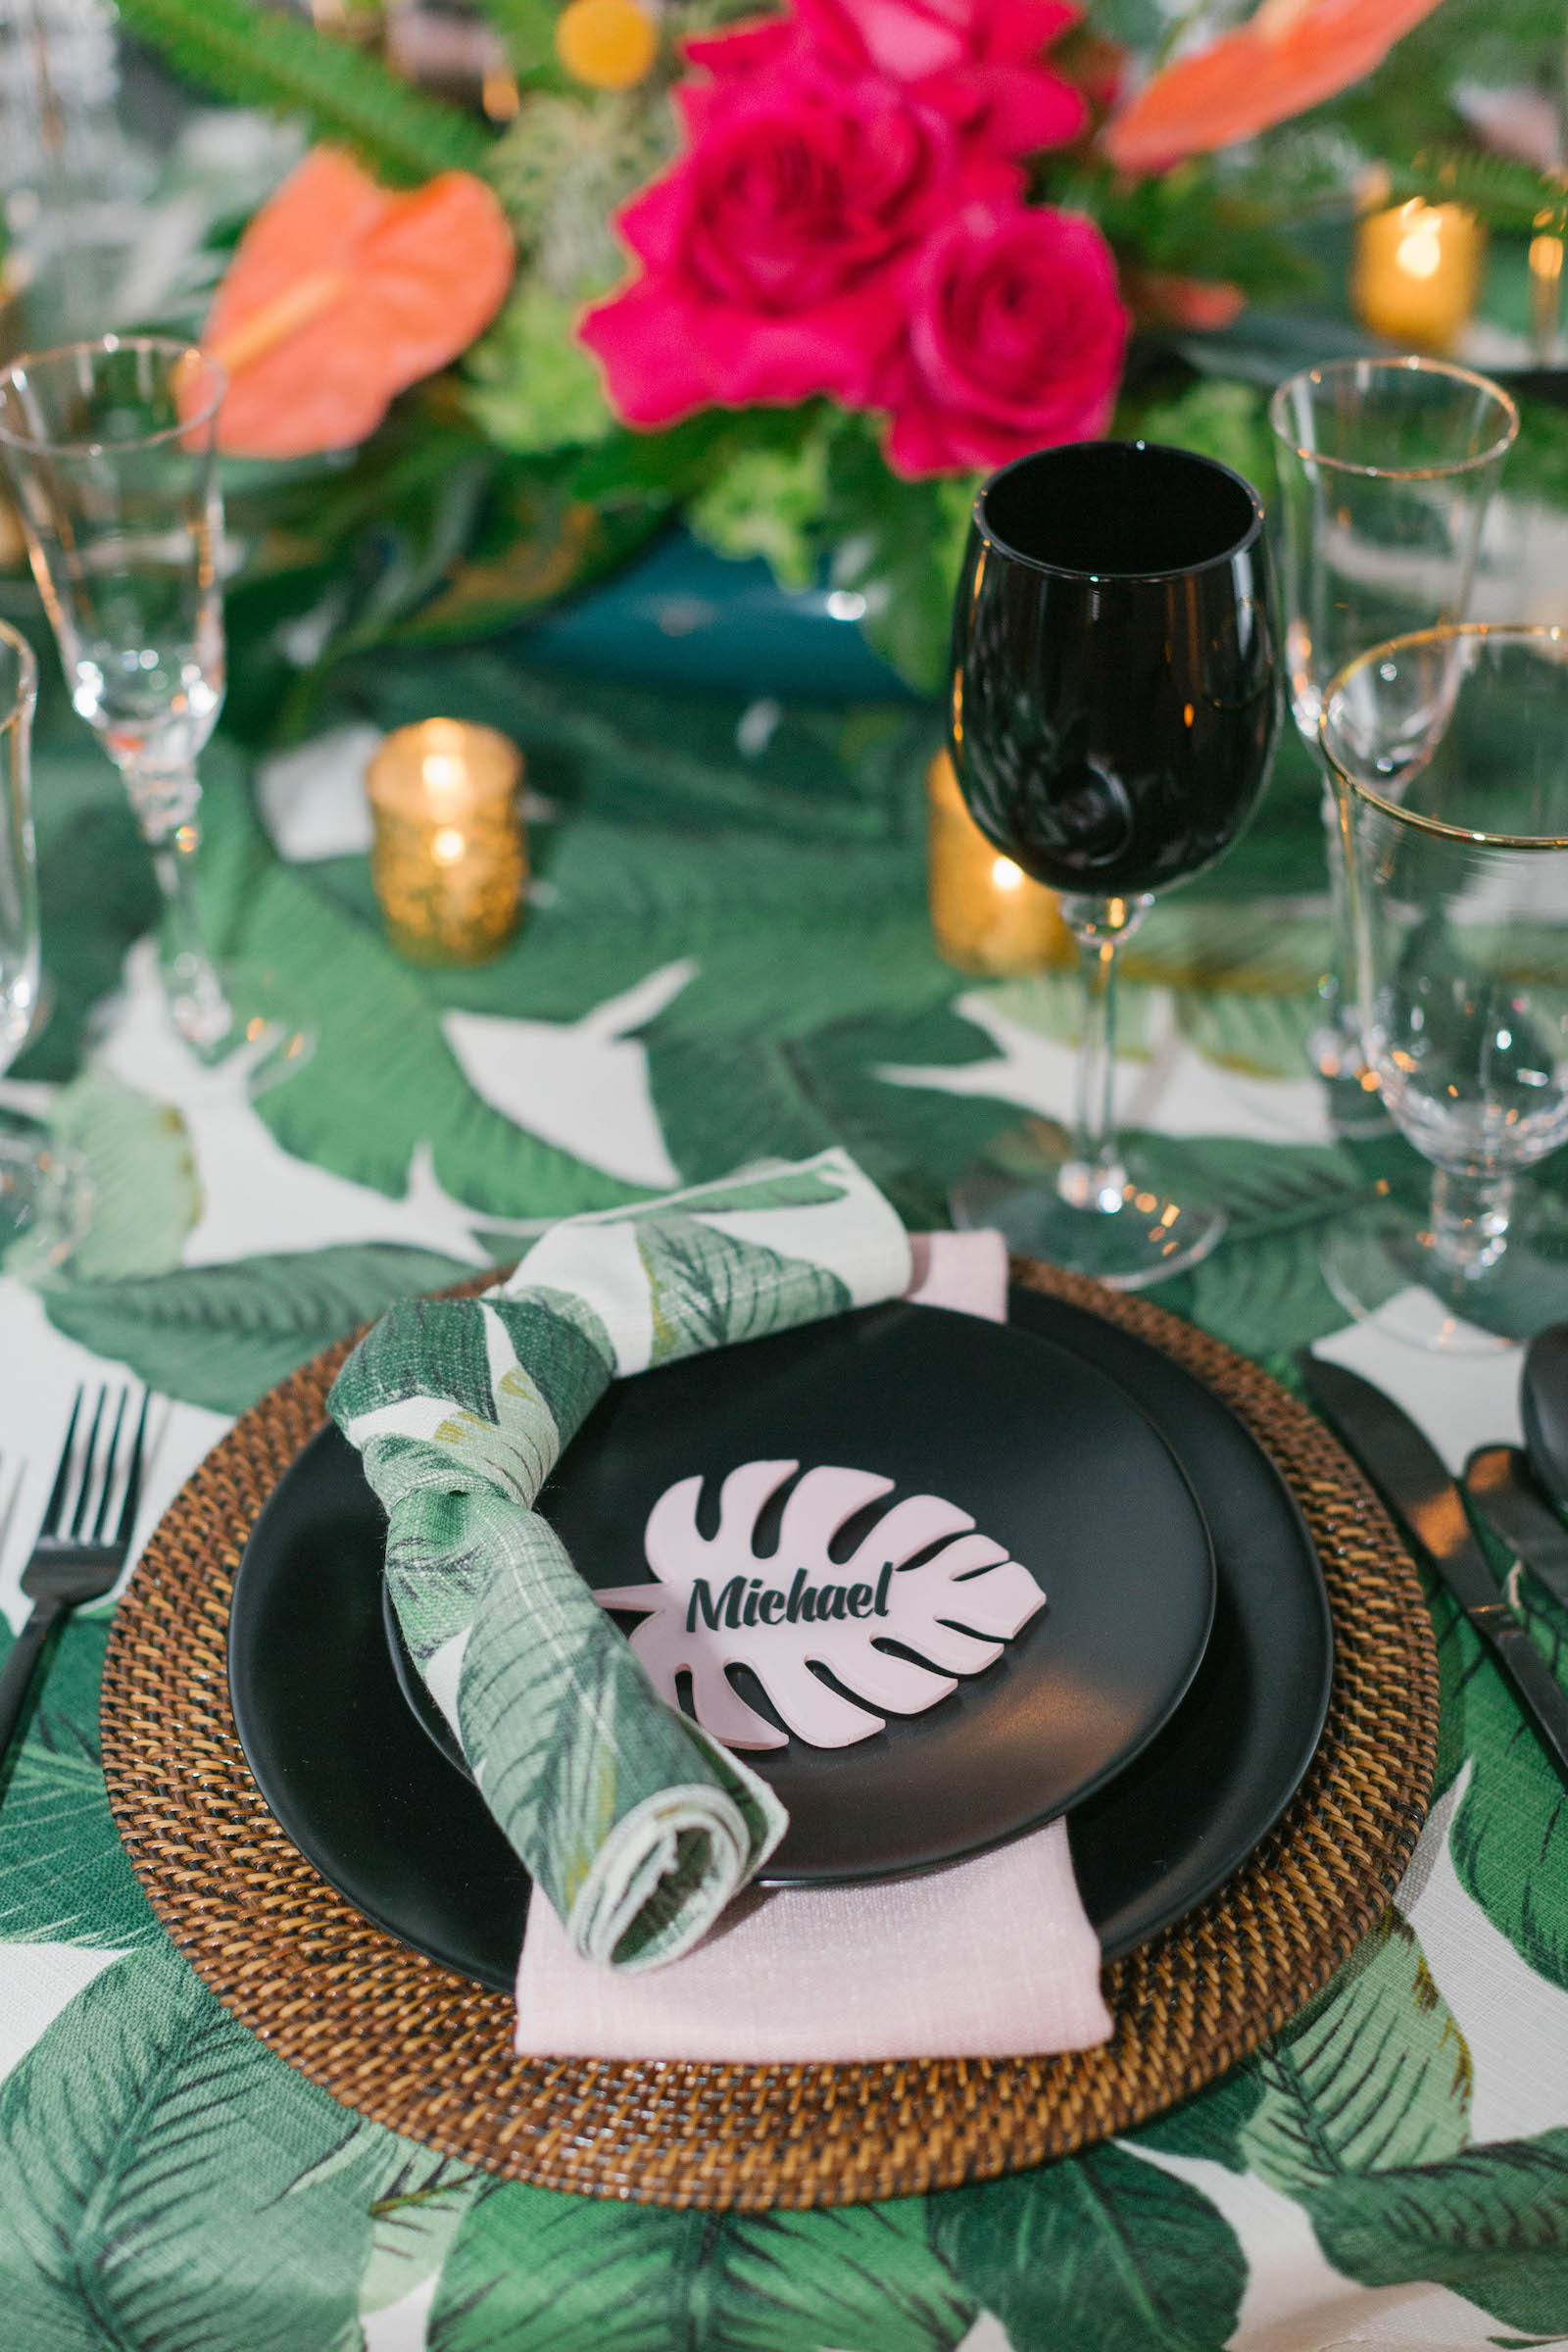 Palm Leave Linen with Wicker Charger, Black Place Setting, Palm Leaf Name Card,and Dishes, and Vibrant Pink and Orange Centerpiece   Tropical Destination Beach Wedding Inspiration   Bellwether Beach Resort Styled with Love by Marry Me Tampa Bay